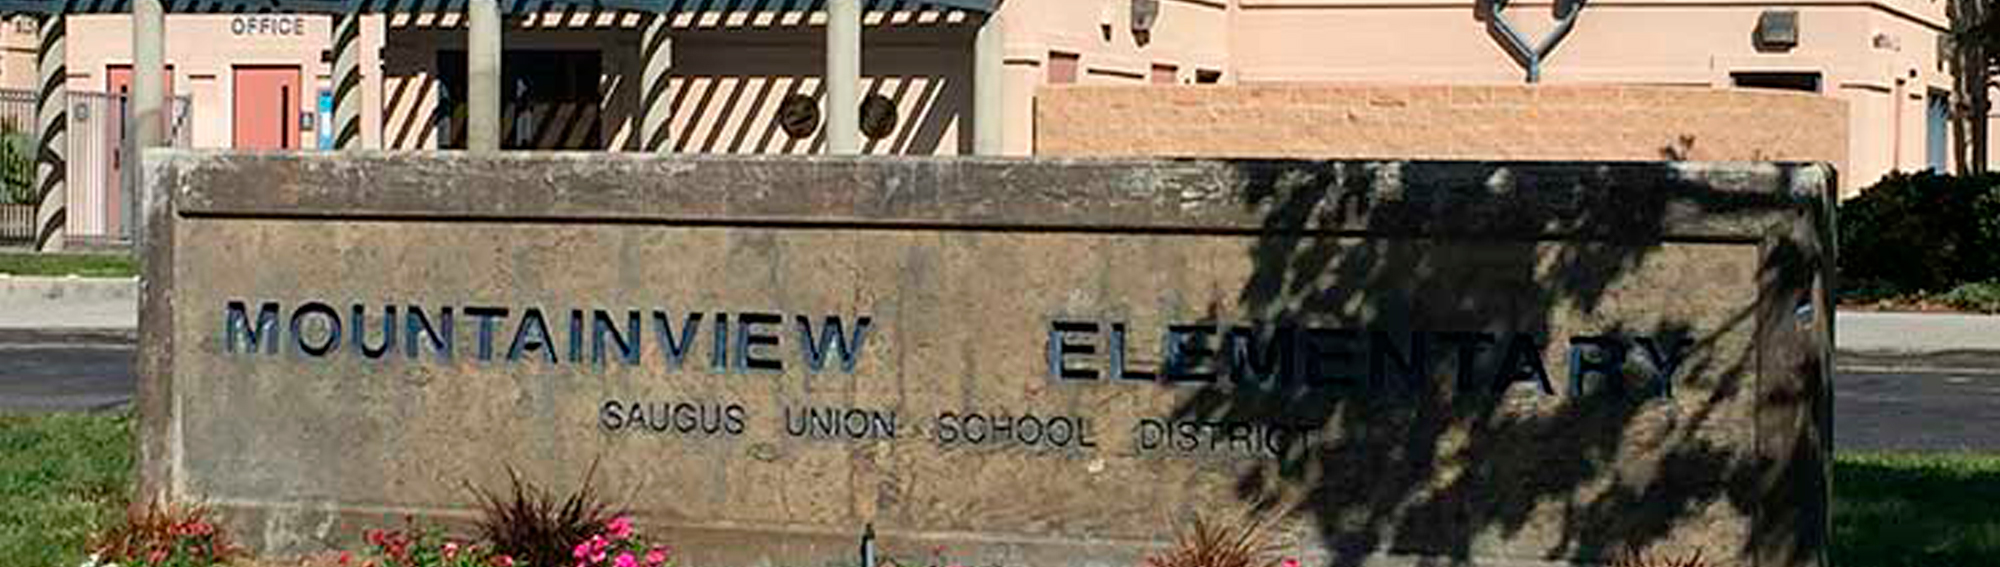 sign in front of the school that says - Mountainview Elementary Saugus Union School District